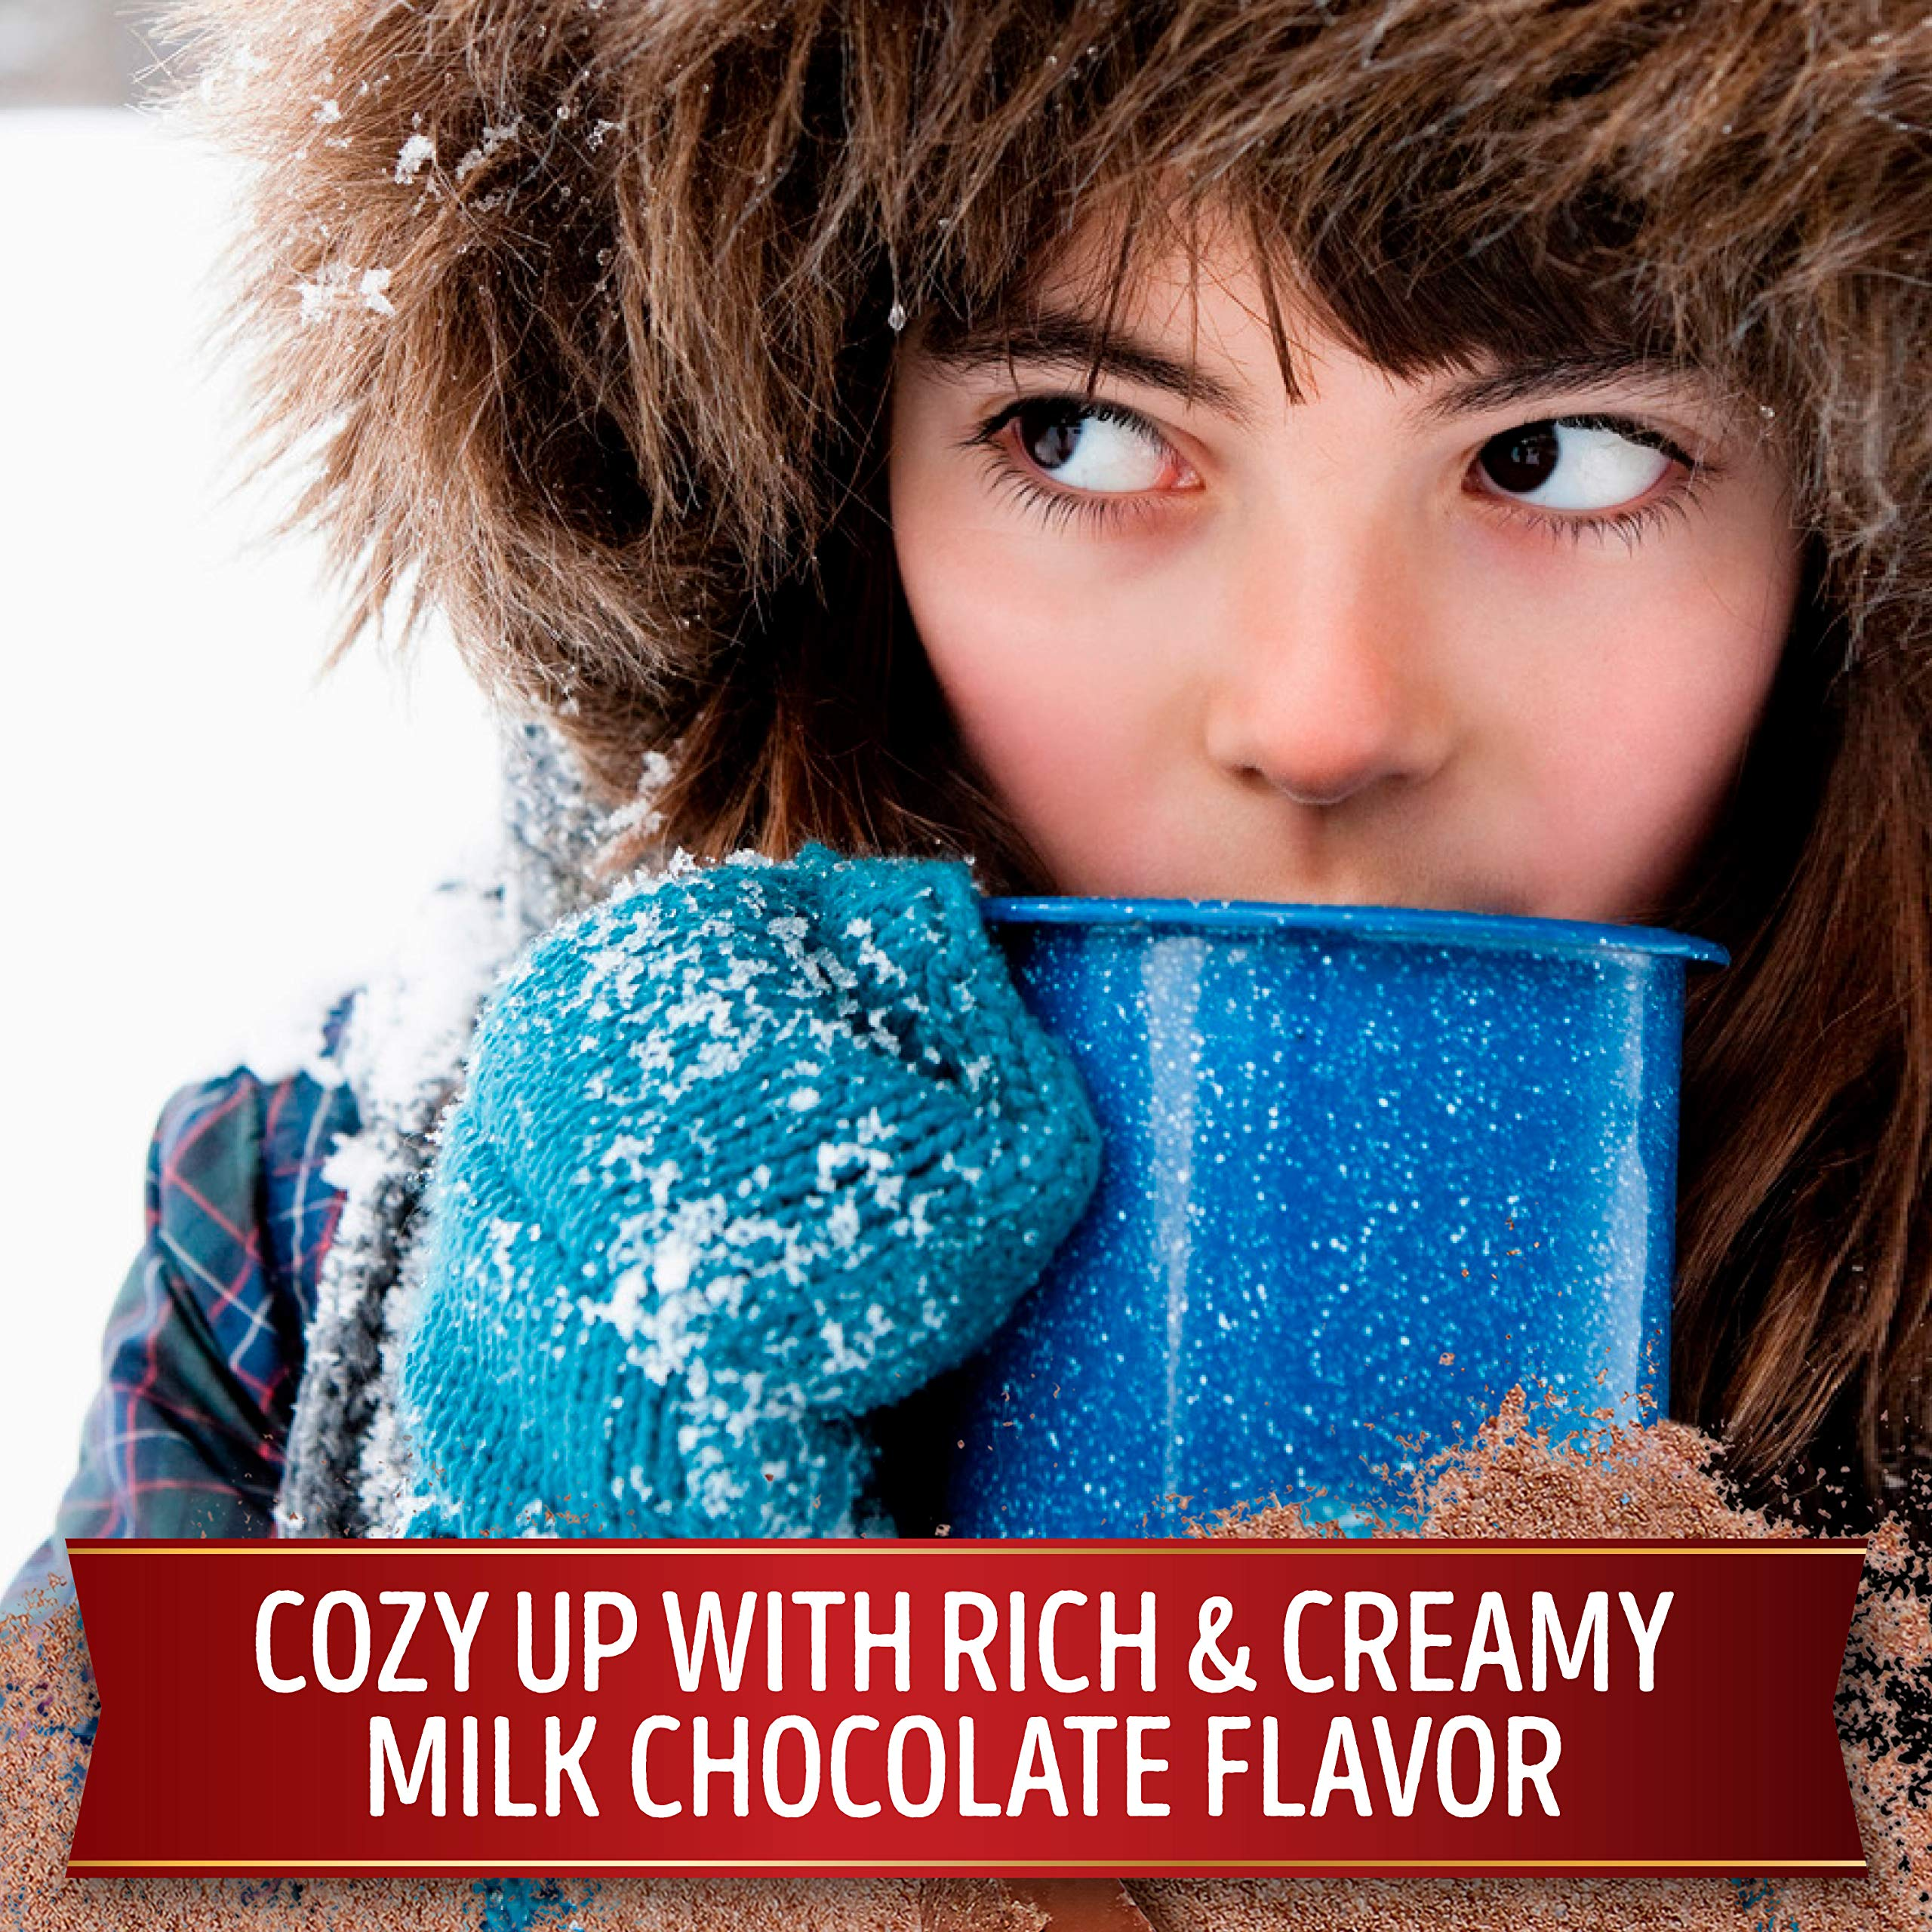 Swiss Miss Milk Chocolate Flavor Hot Cocoa Mix Canister, 22.23 oz. (Pack of 12) by Swiss Miss (Image #3)